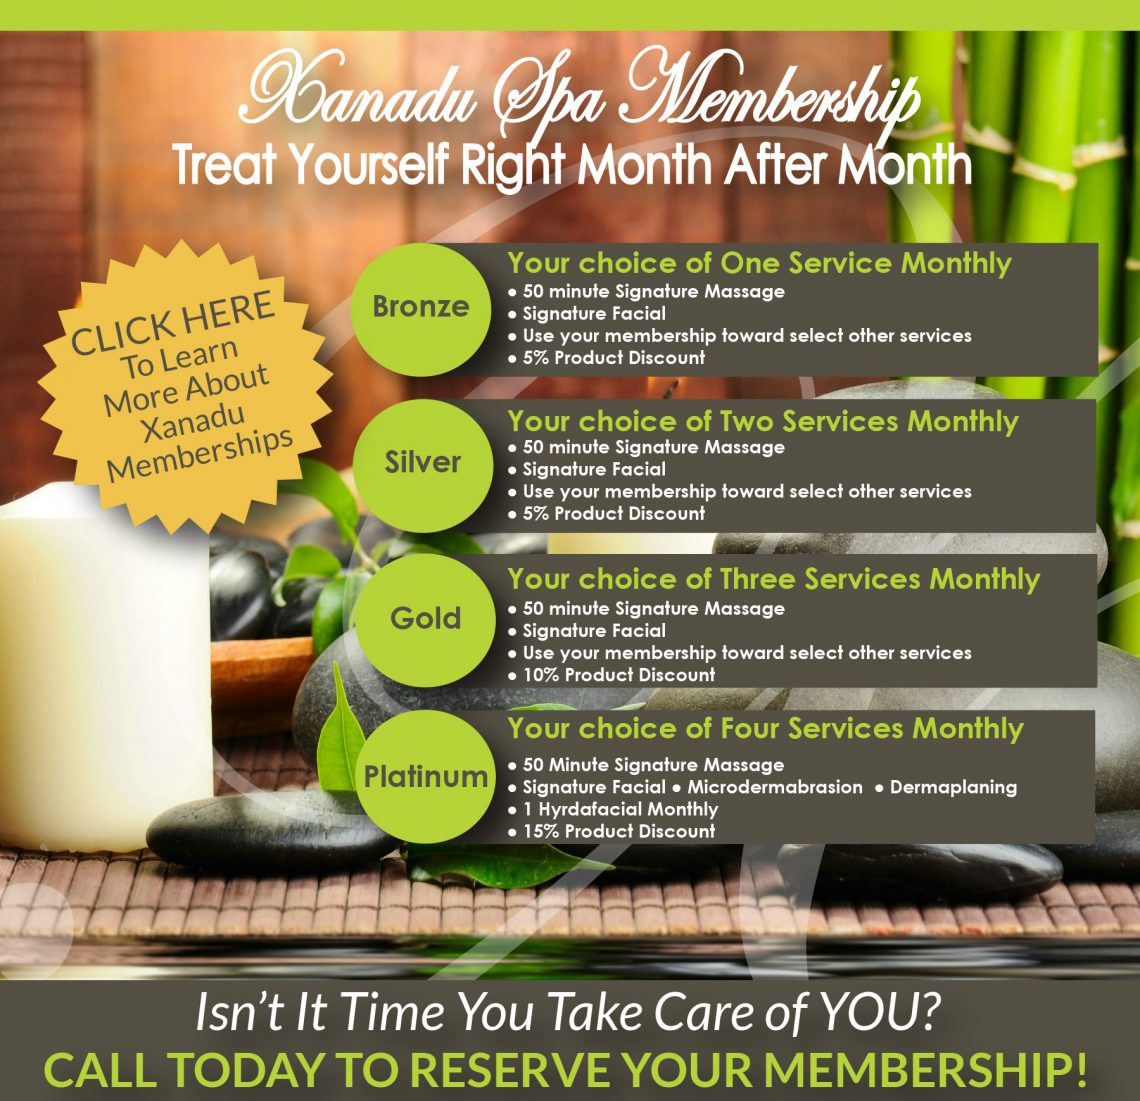 Membership options at Xanadu Med Spa